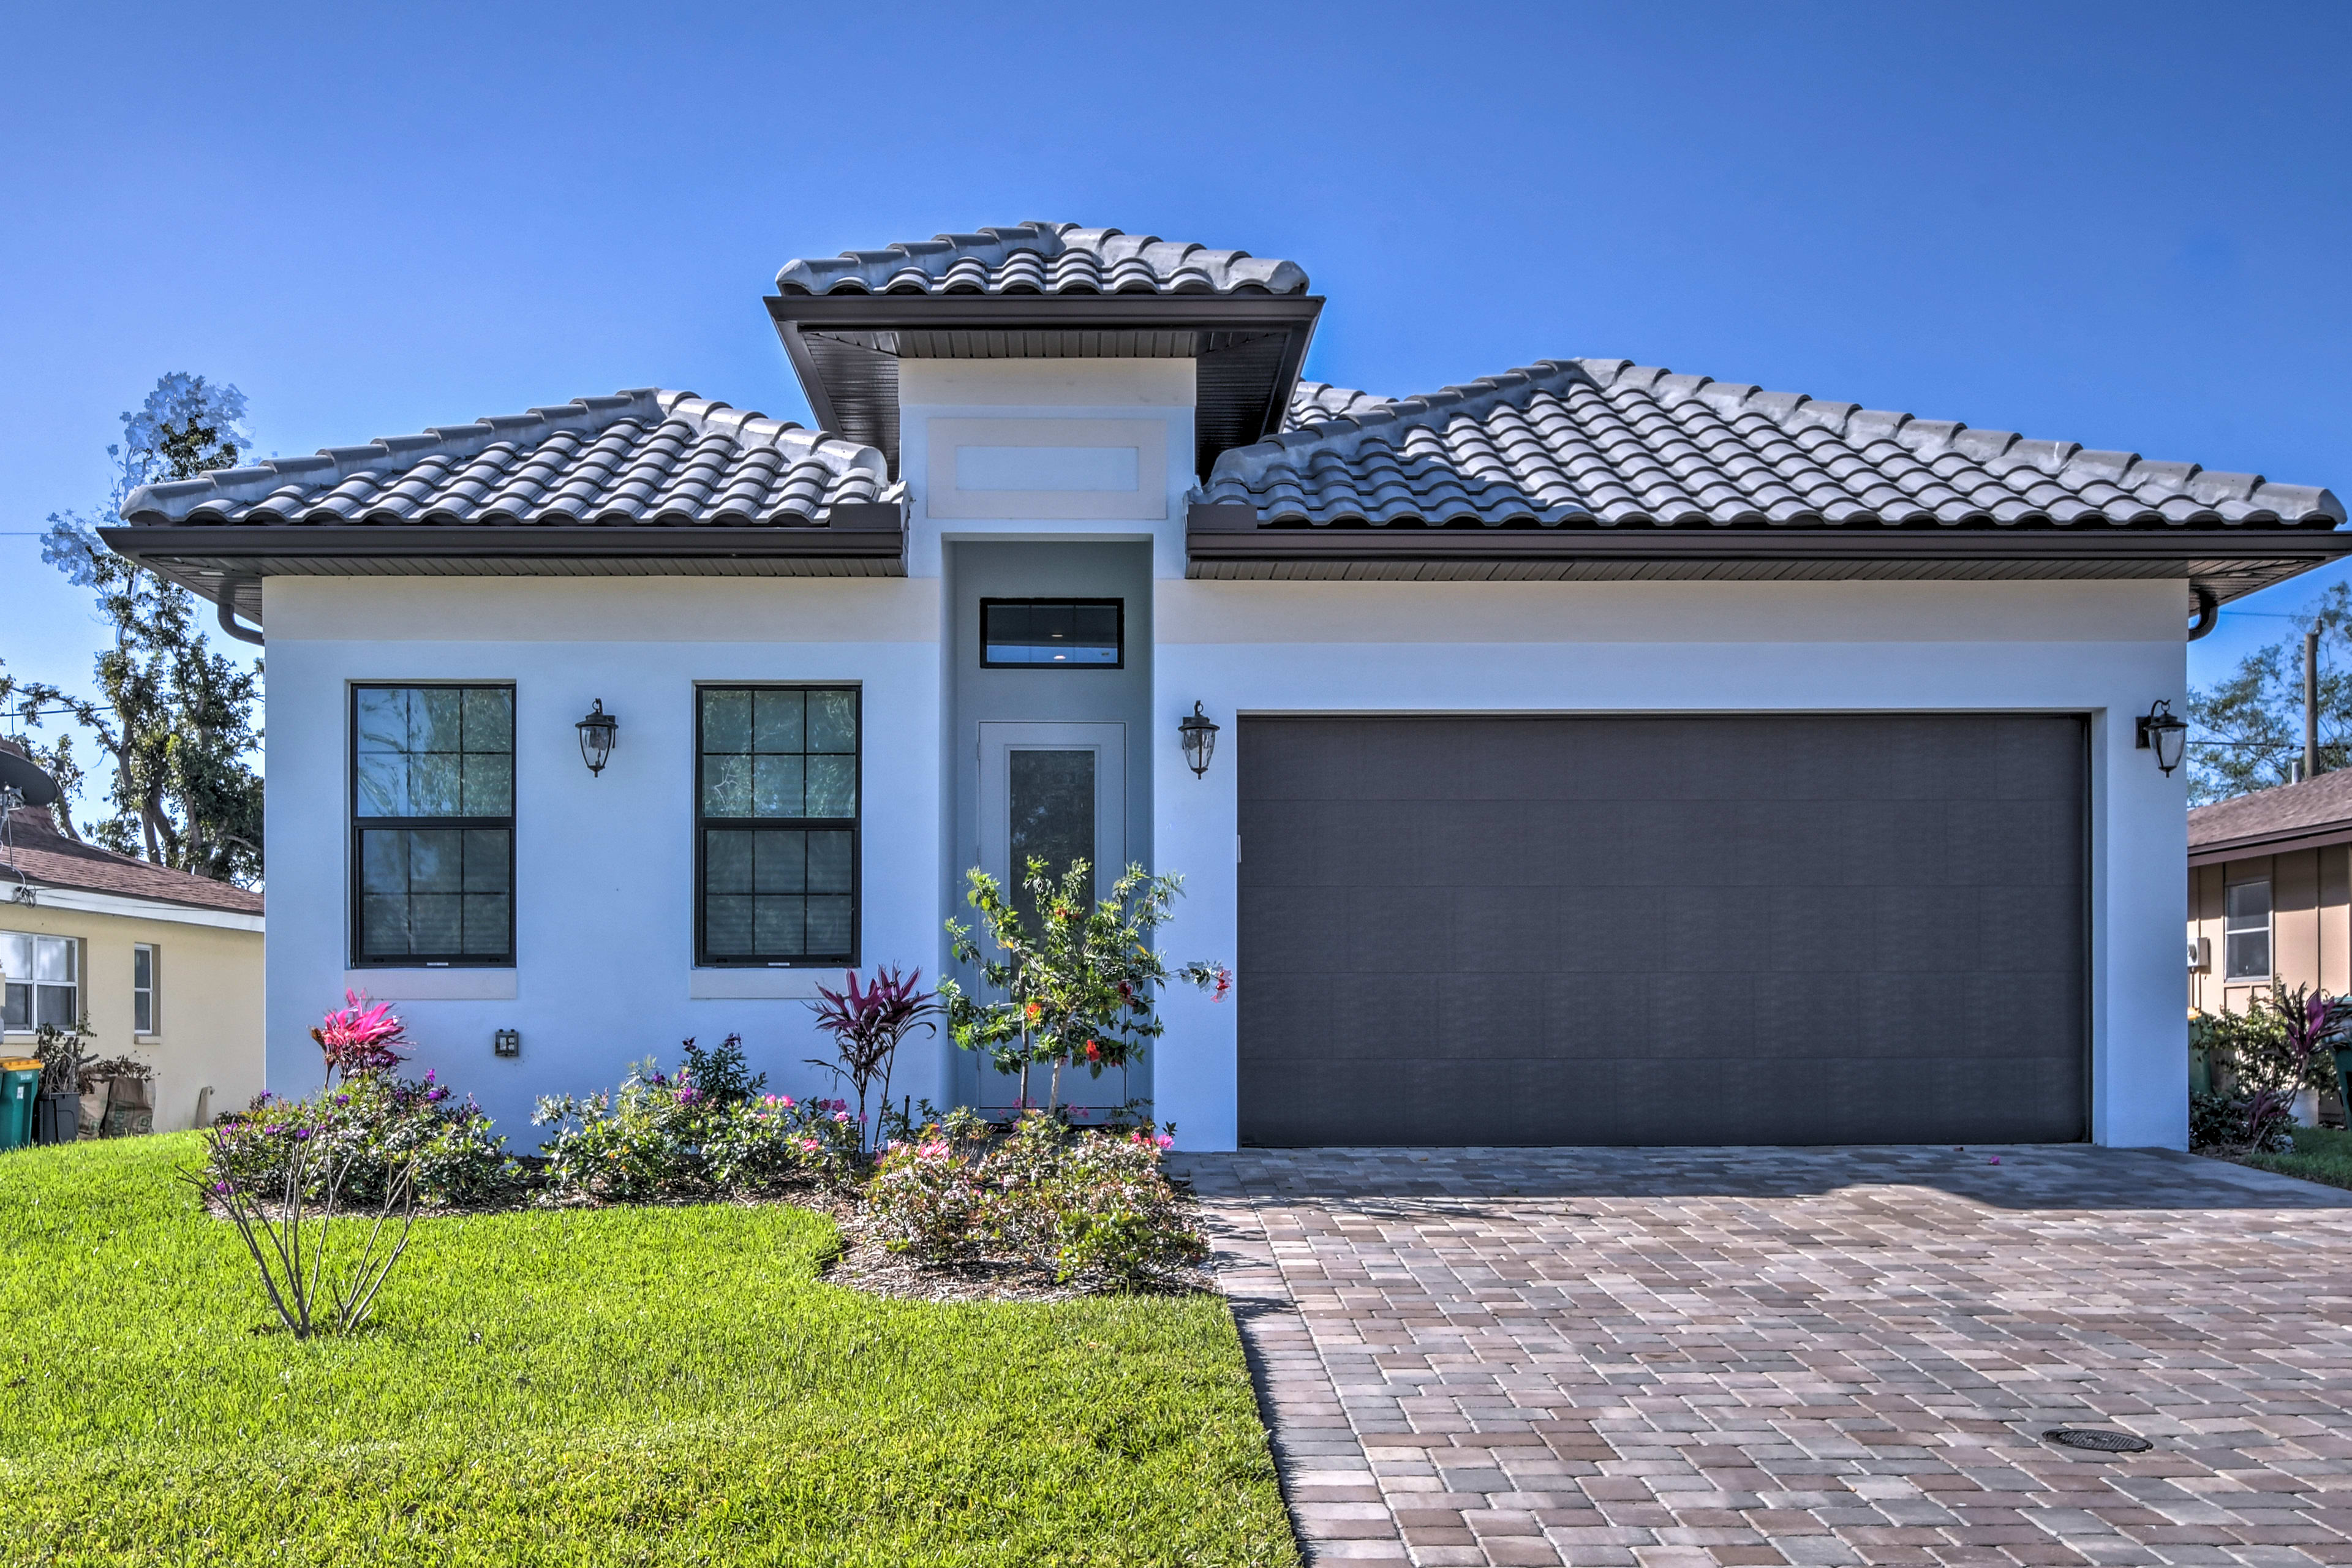 The beautiful home is located just 2 miles from Vanderbilt Beach!